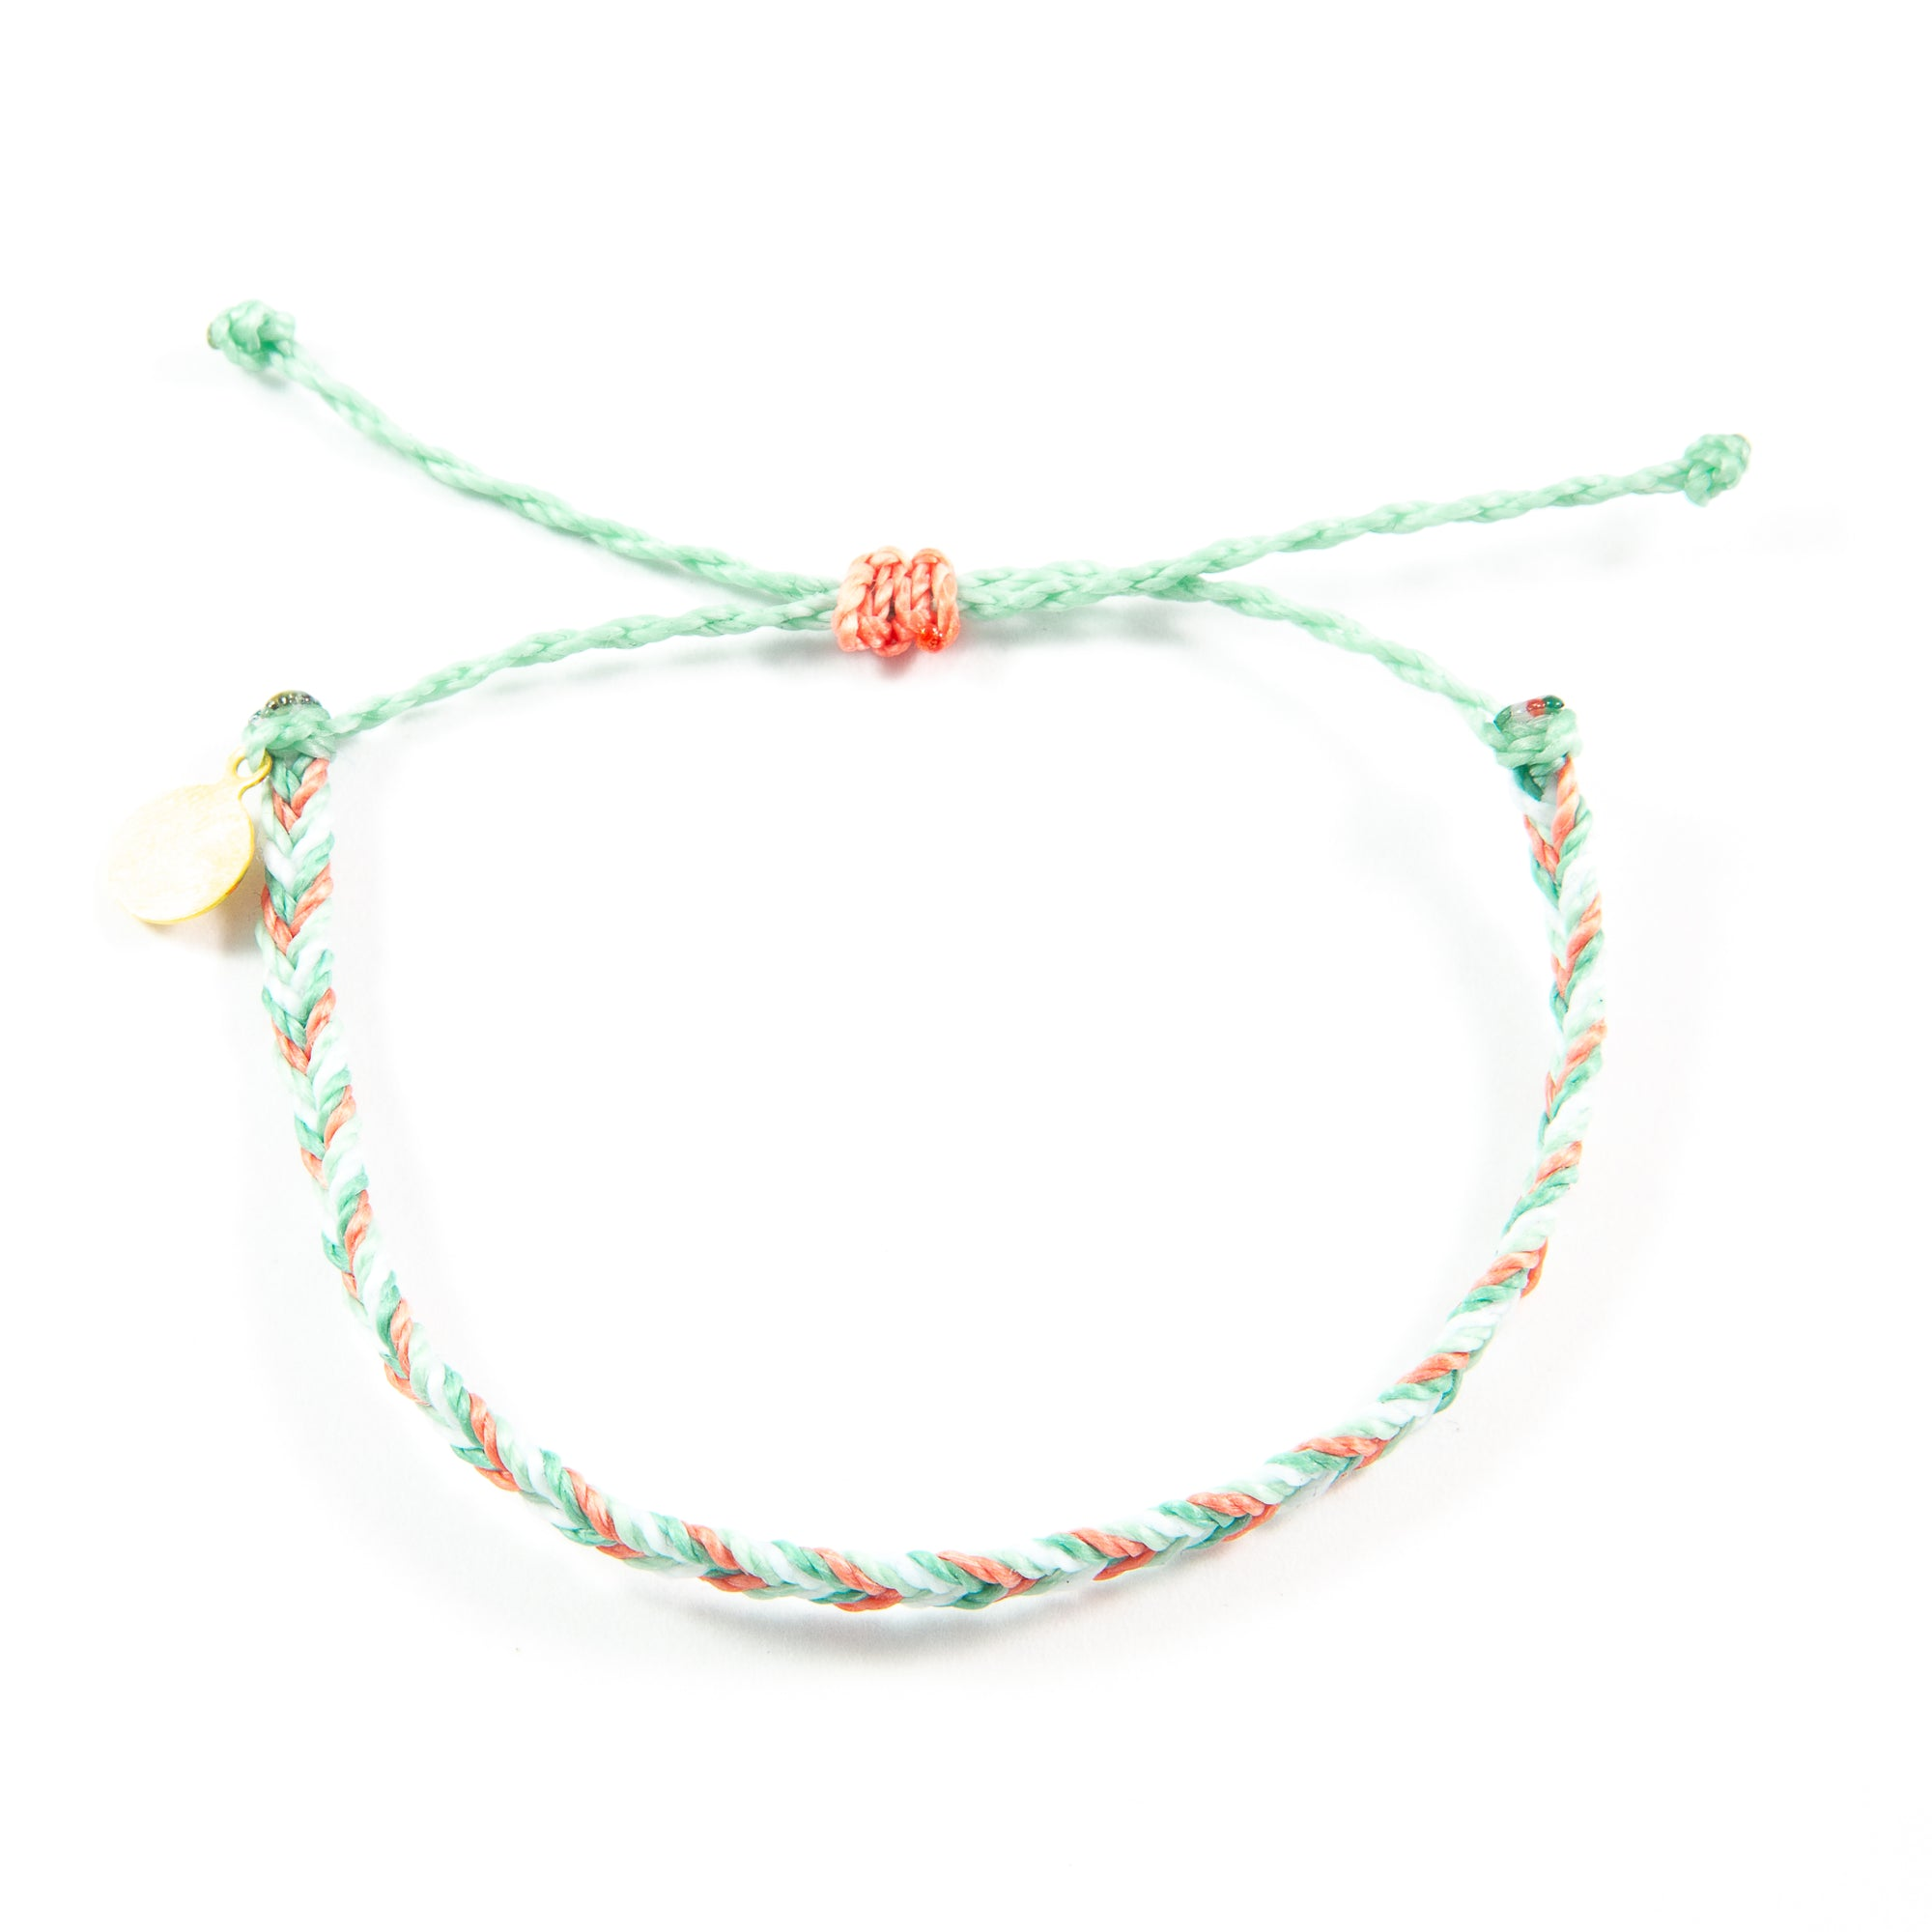 Coral & Secret Garden Chevron Education Bracelet